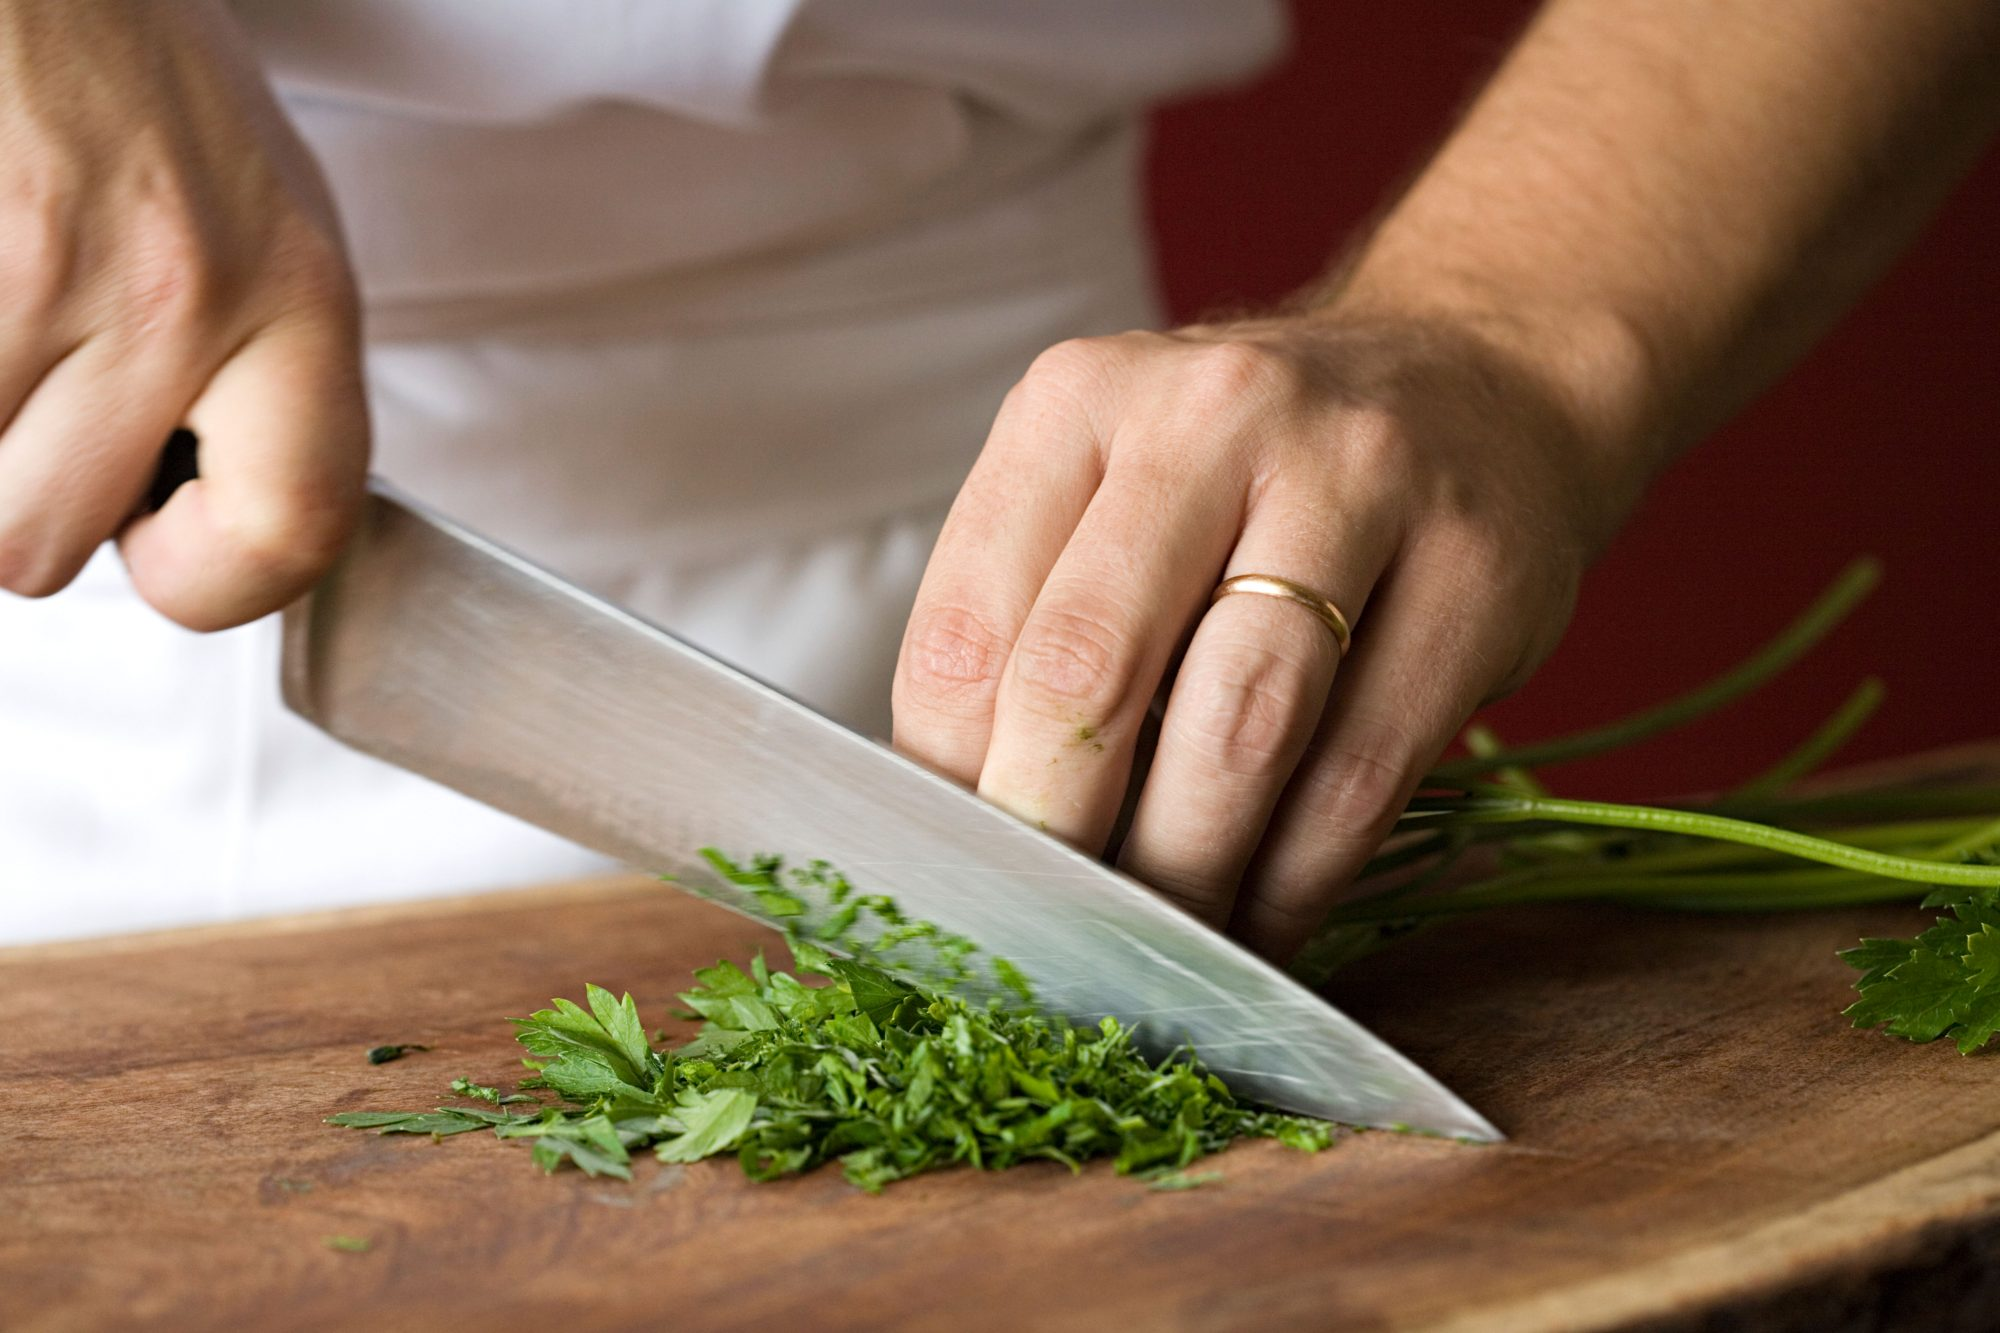 Chef Chopping Parsley Knife